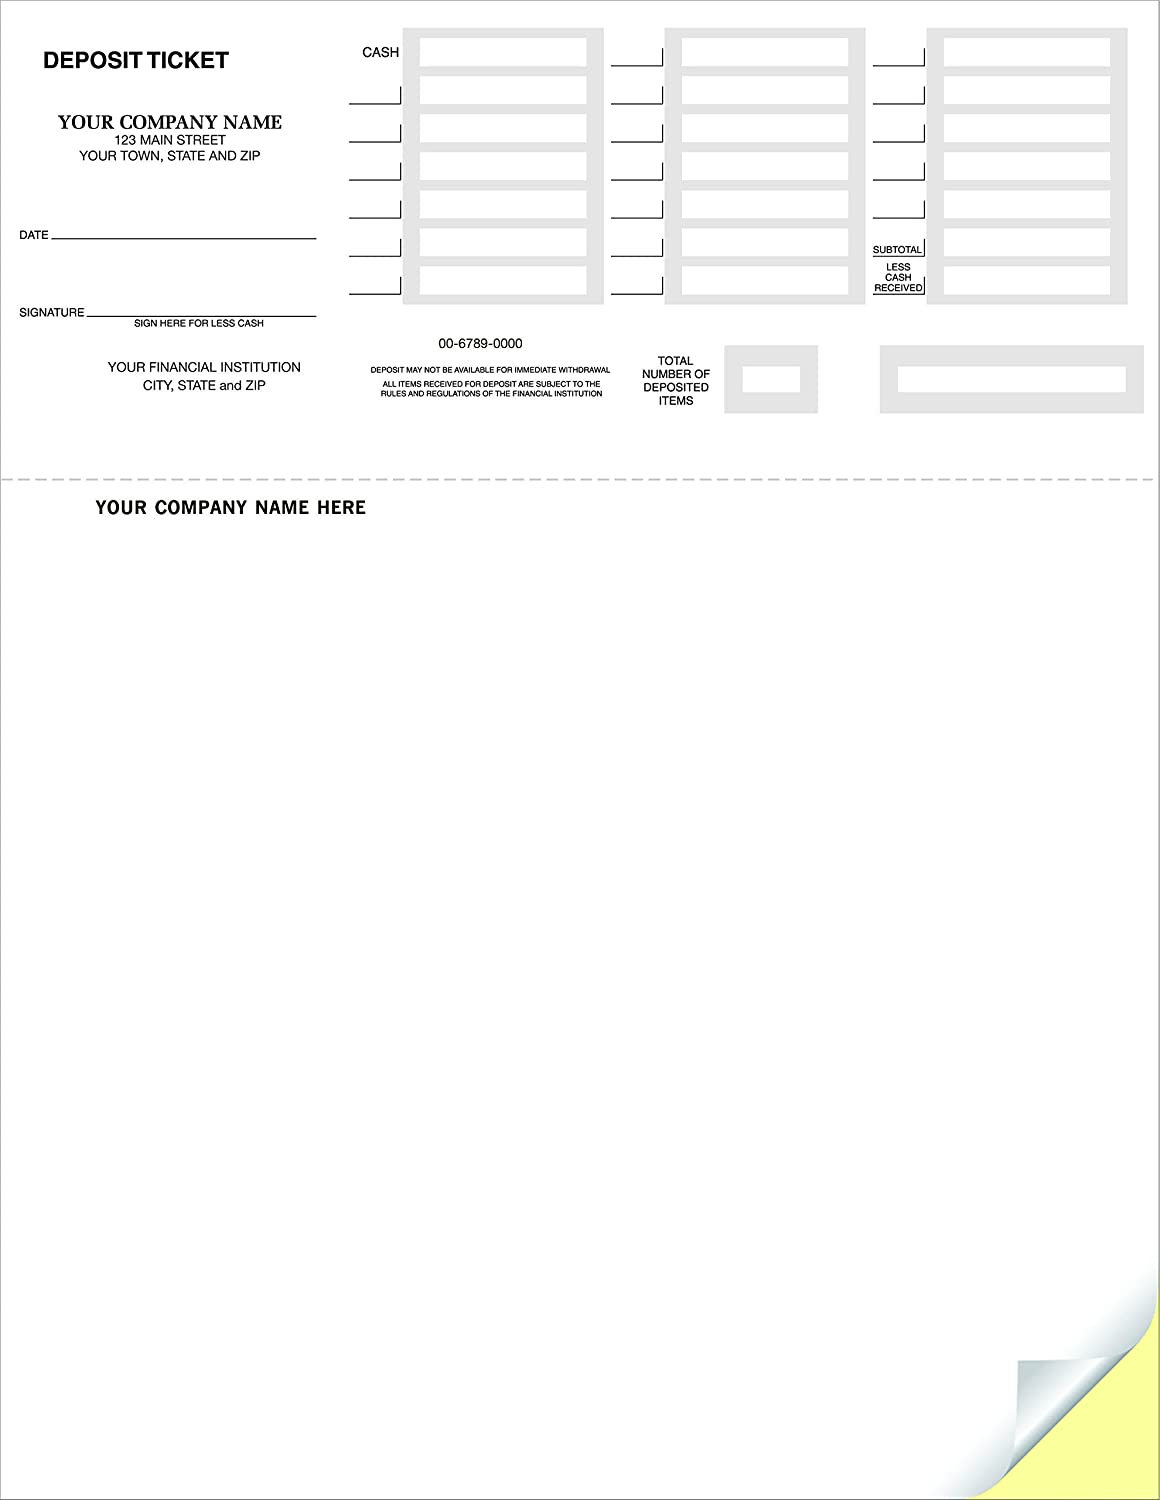 image regarding Quickbooks Printable Deposit Slips identify CheckSimple Laser Deposit Slips - Deposit Tickets Appropriate with QuickBooks Quicken (100 Qty) - Customized